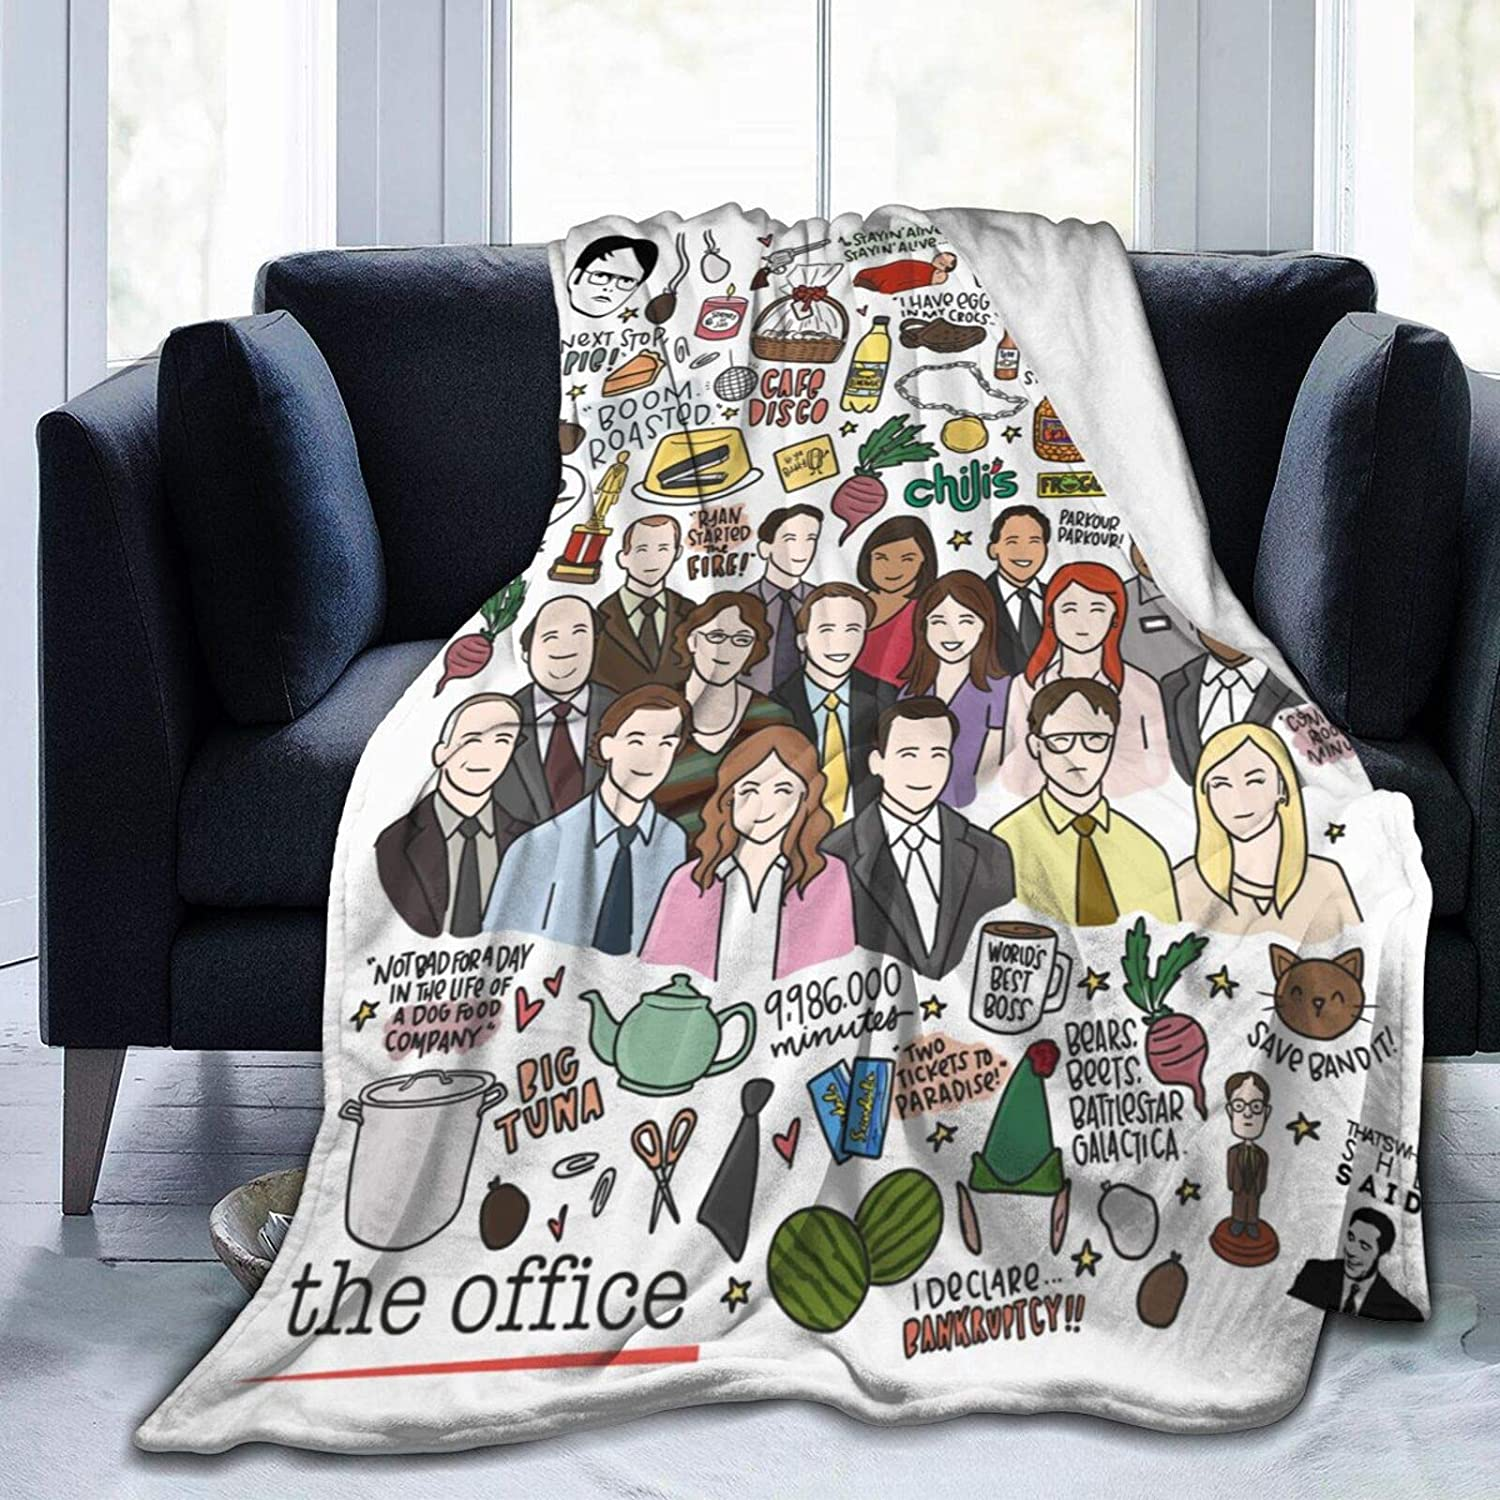 The Office Blanket Ultra Soft Flannel Throw Blanket Anti-Pilling Warm Blankets Couch Bed Office Travel Picnic Weighted Blanket for Kids Adults 50